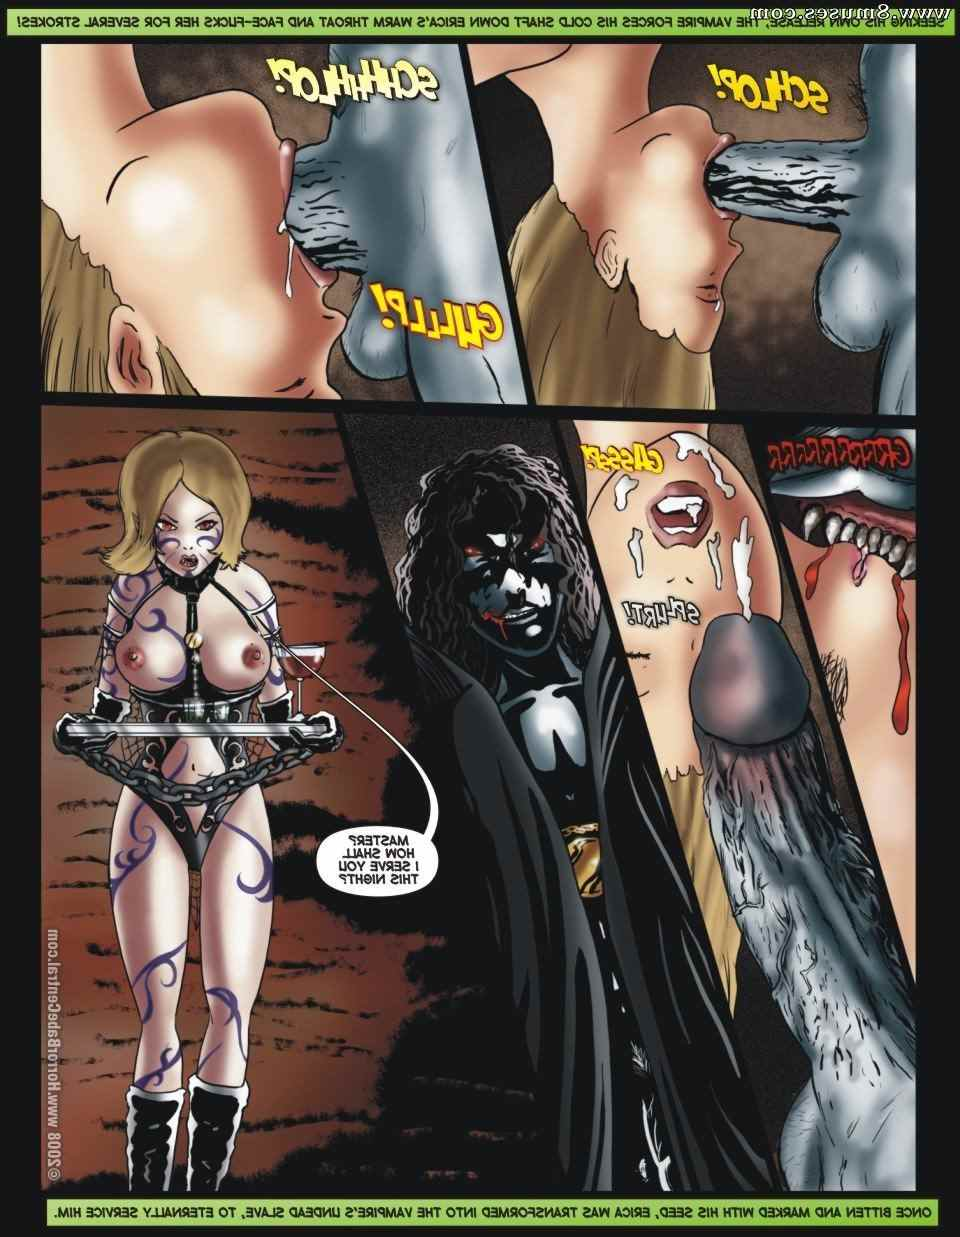 Central-Comics/Horror-Babe-Central/Brasov Brasov__8muses_-_Sex_and_Porn_Comics_5.jpg